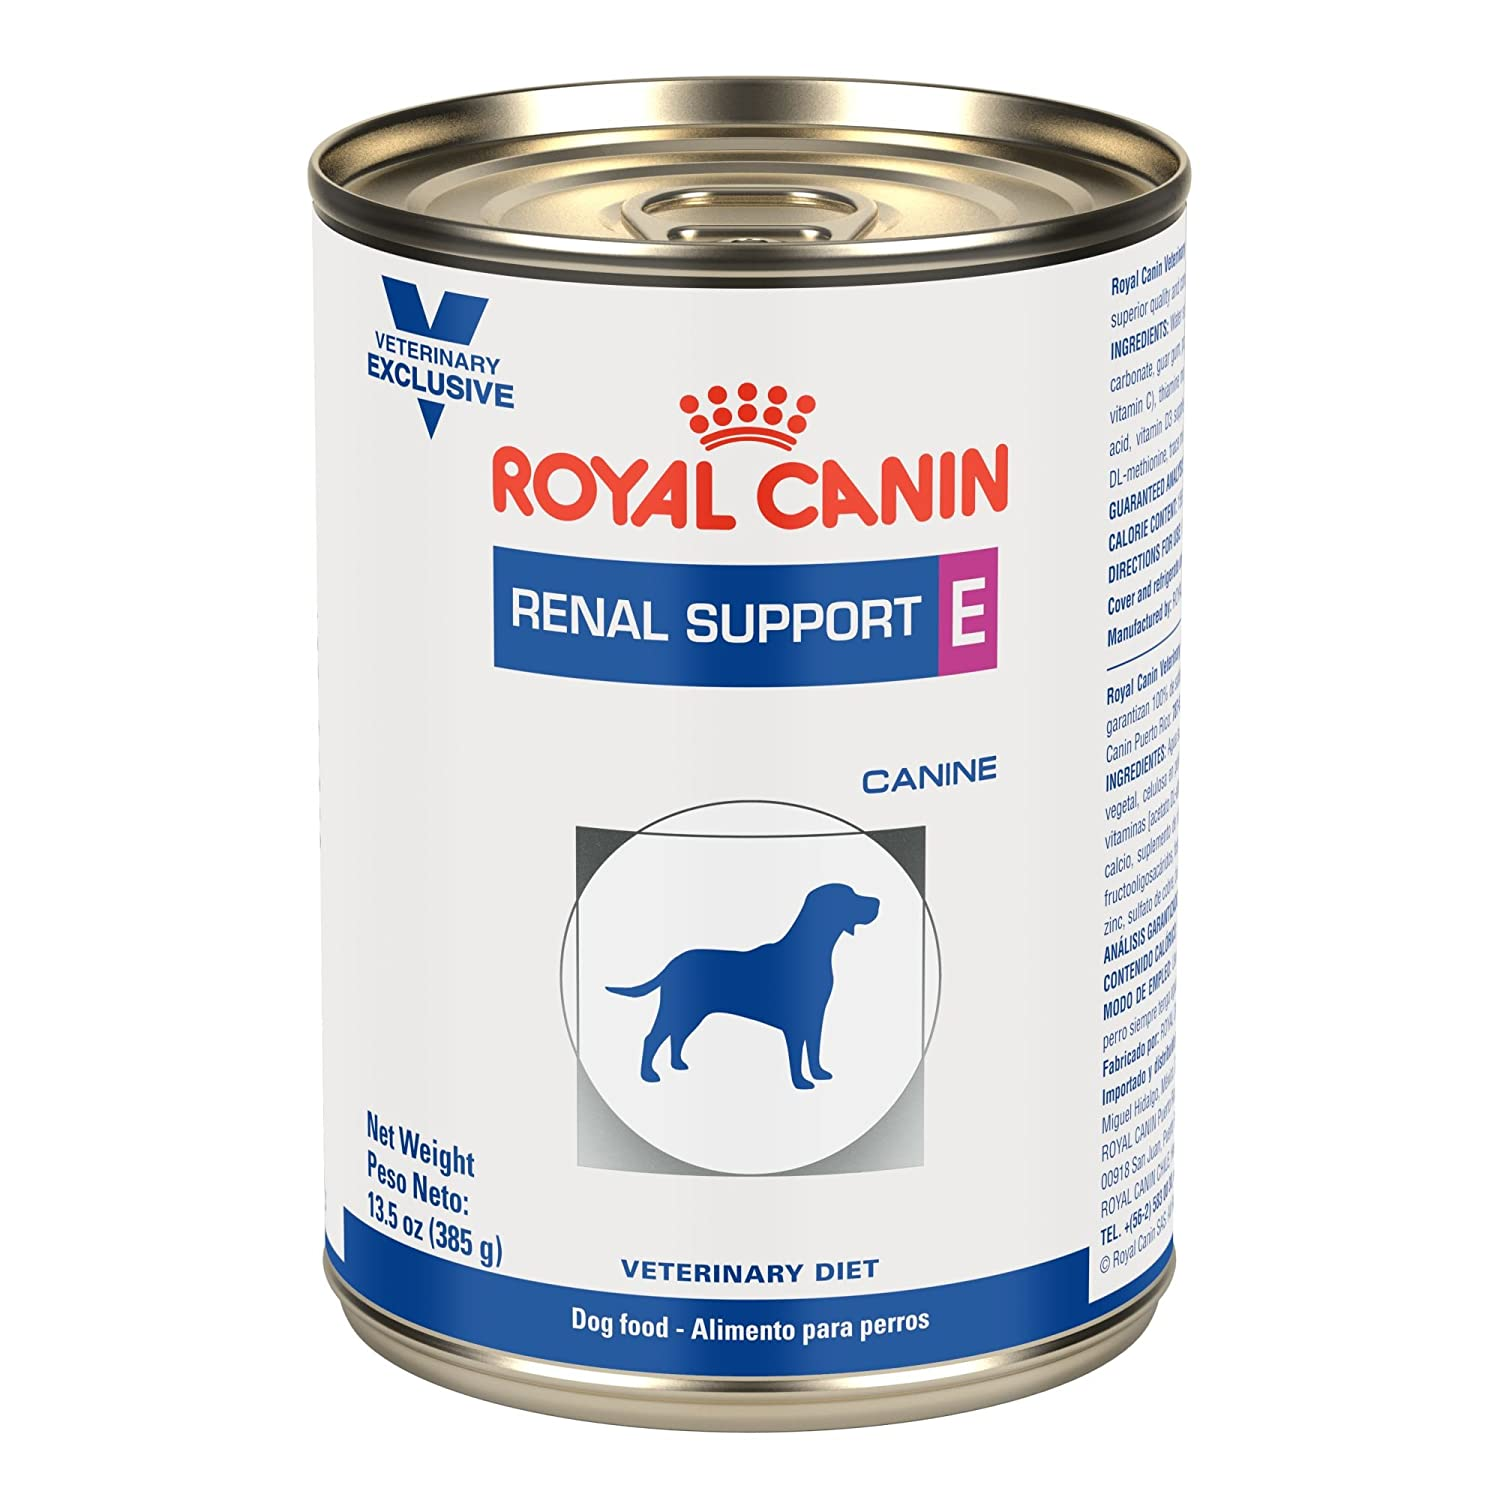 Royal Canin Renal Support E Canned Dog Food 24 13.5oz cans